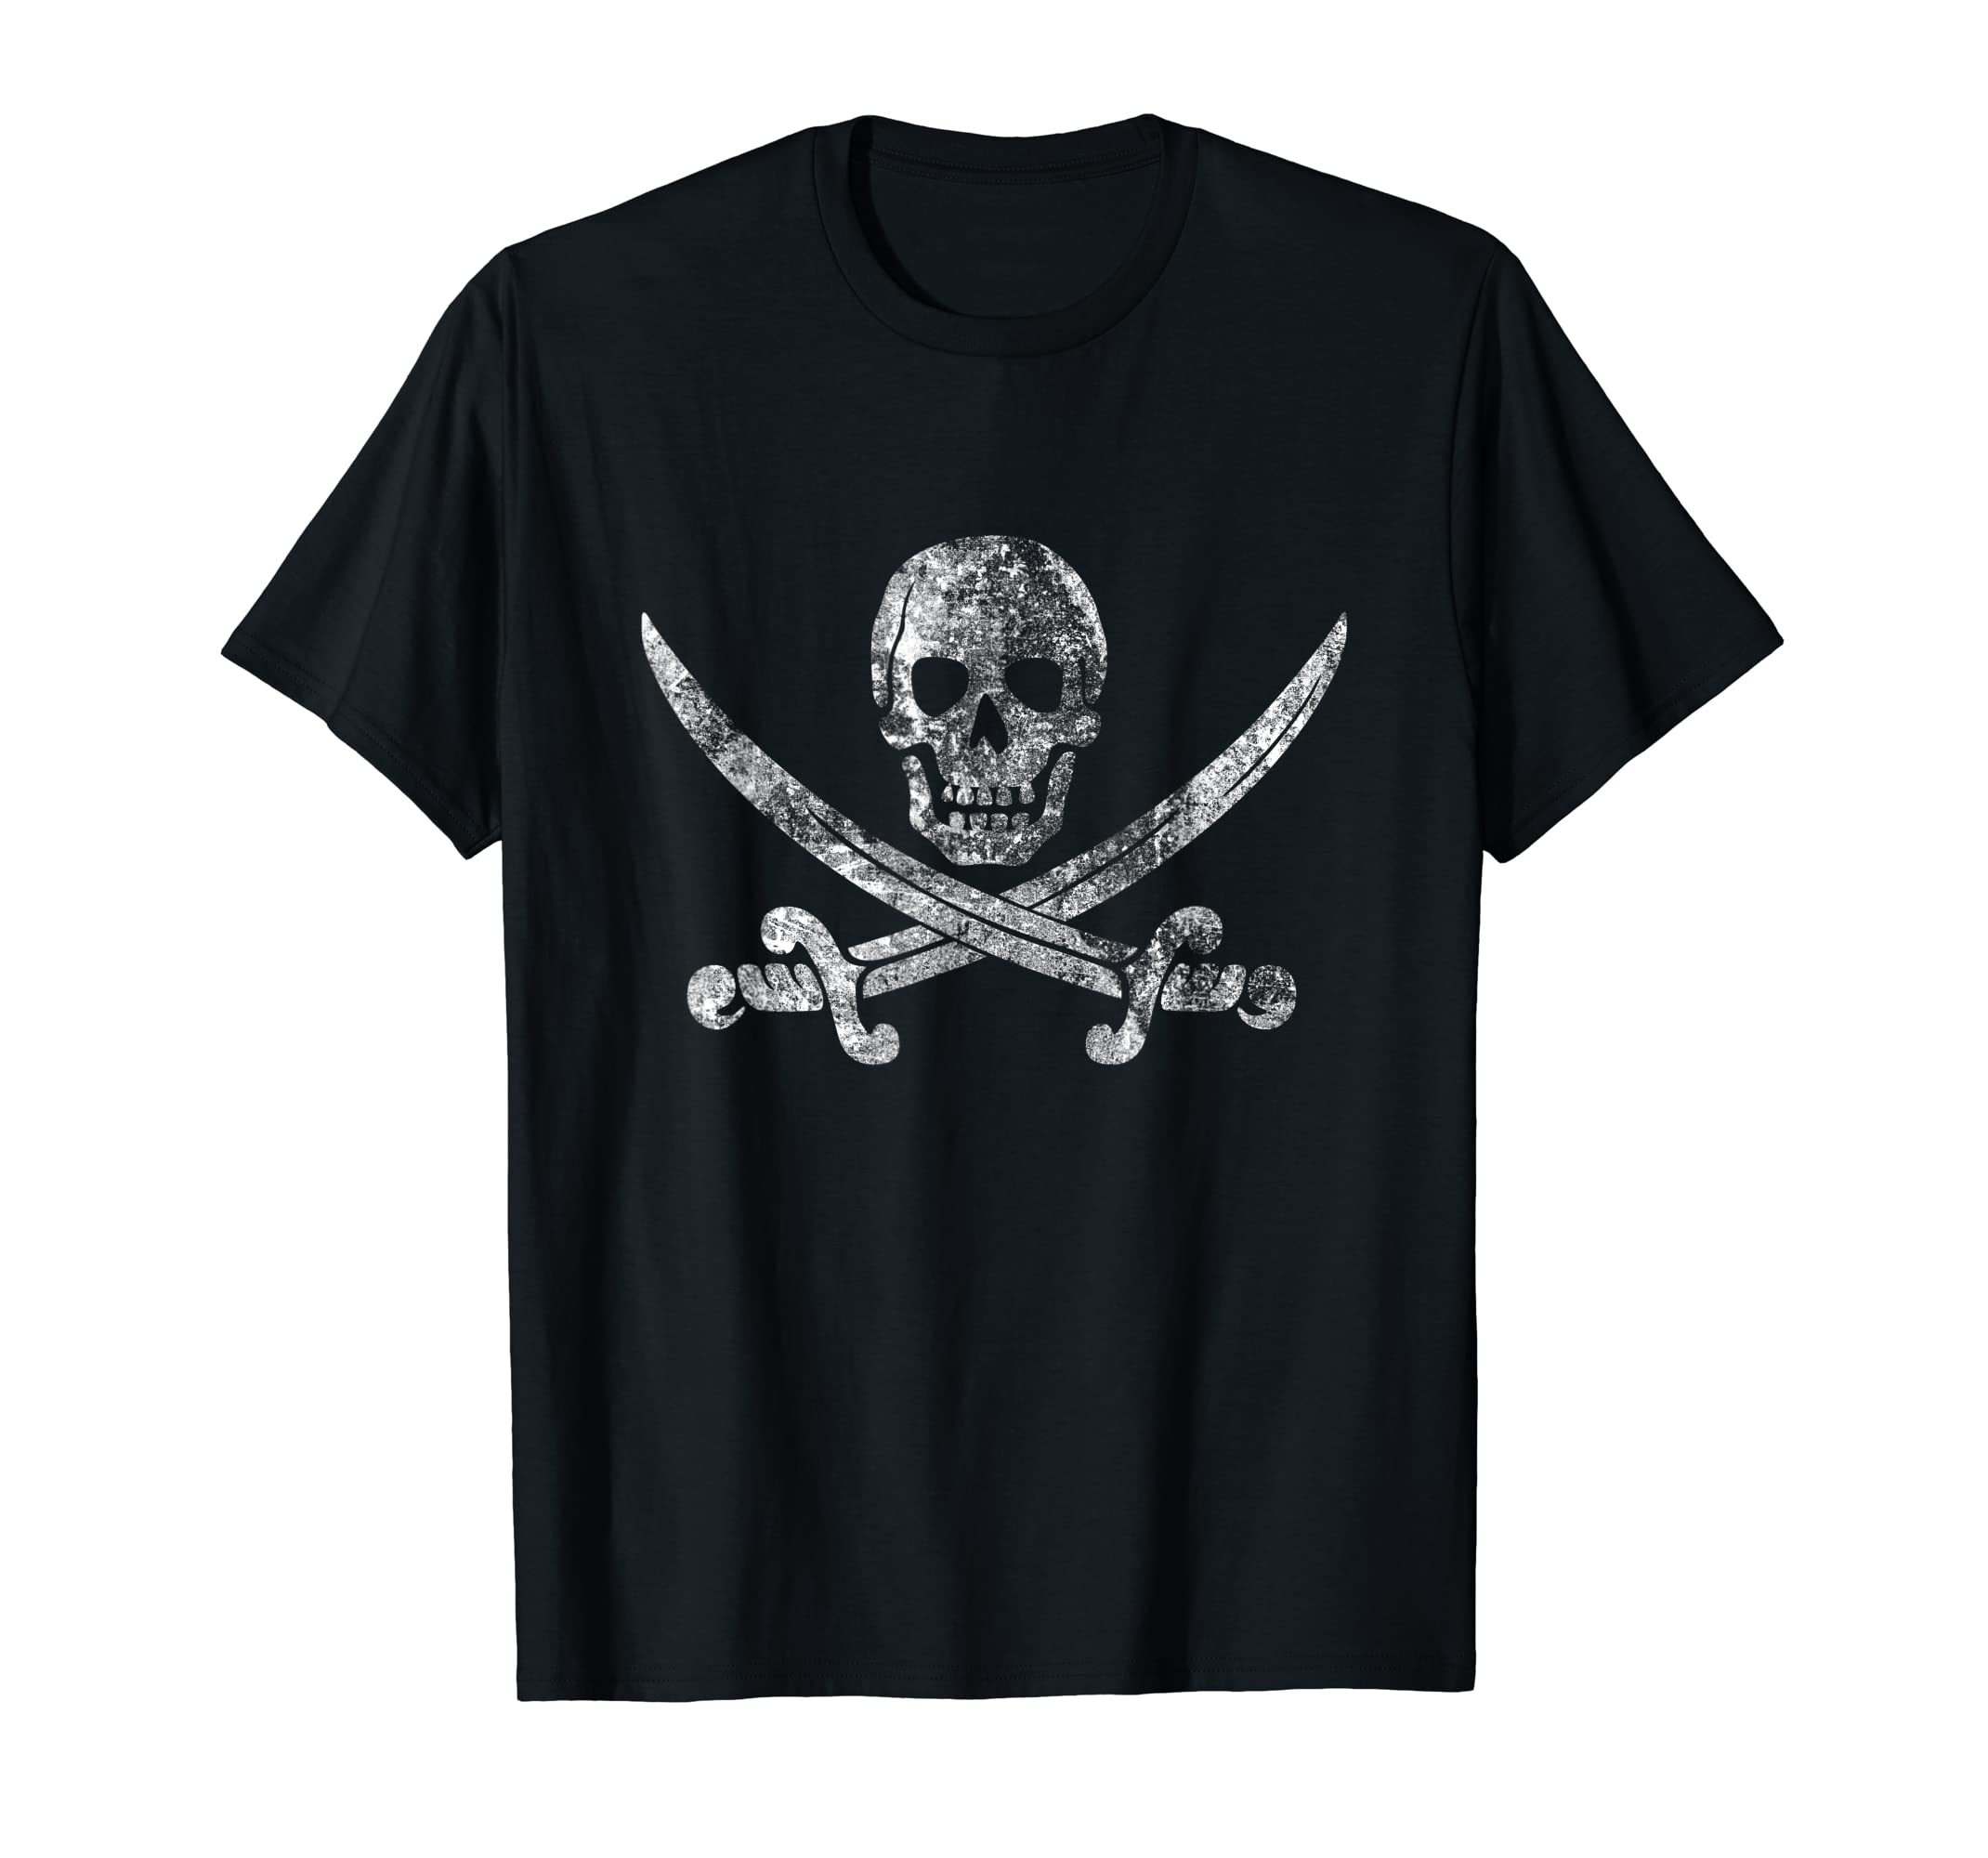 Vintage Pirate Skull shirt - Jolly Roger Flag Tshirt-Men's T-Shirt-Black